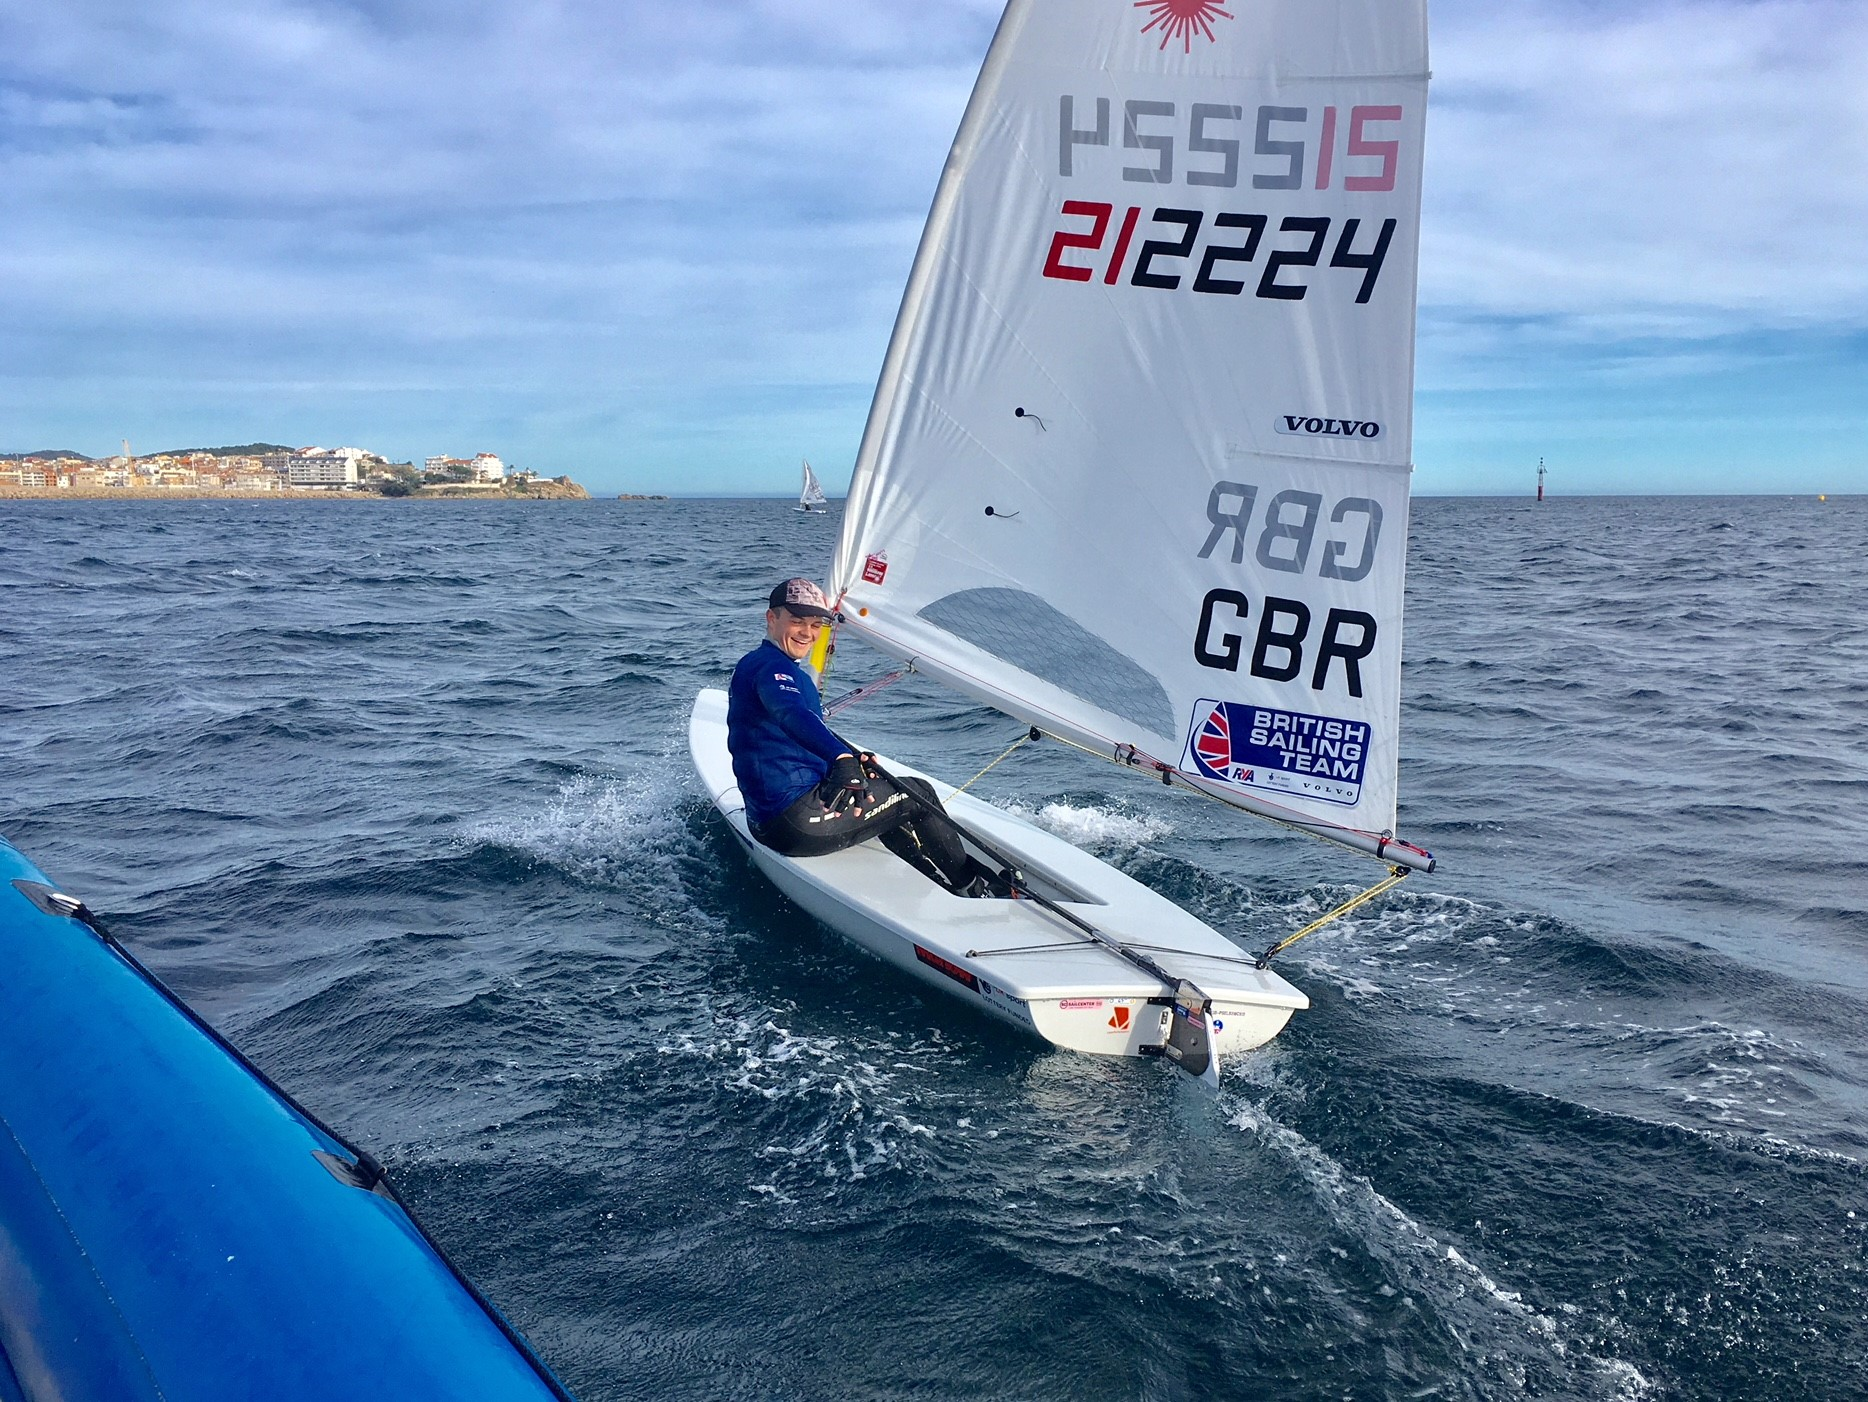 After a week of very mixed conditions I managed to sail well in the medal race to finish 2nd and therefore move up to 5th overall! Still my performance was far from perfect and it is encouraging that I was so close to the leaders despite some of these mistakes. Onwards and upwards.